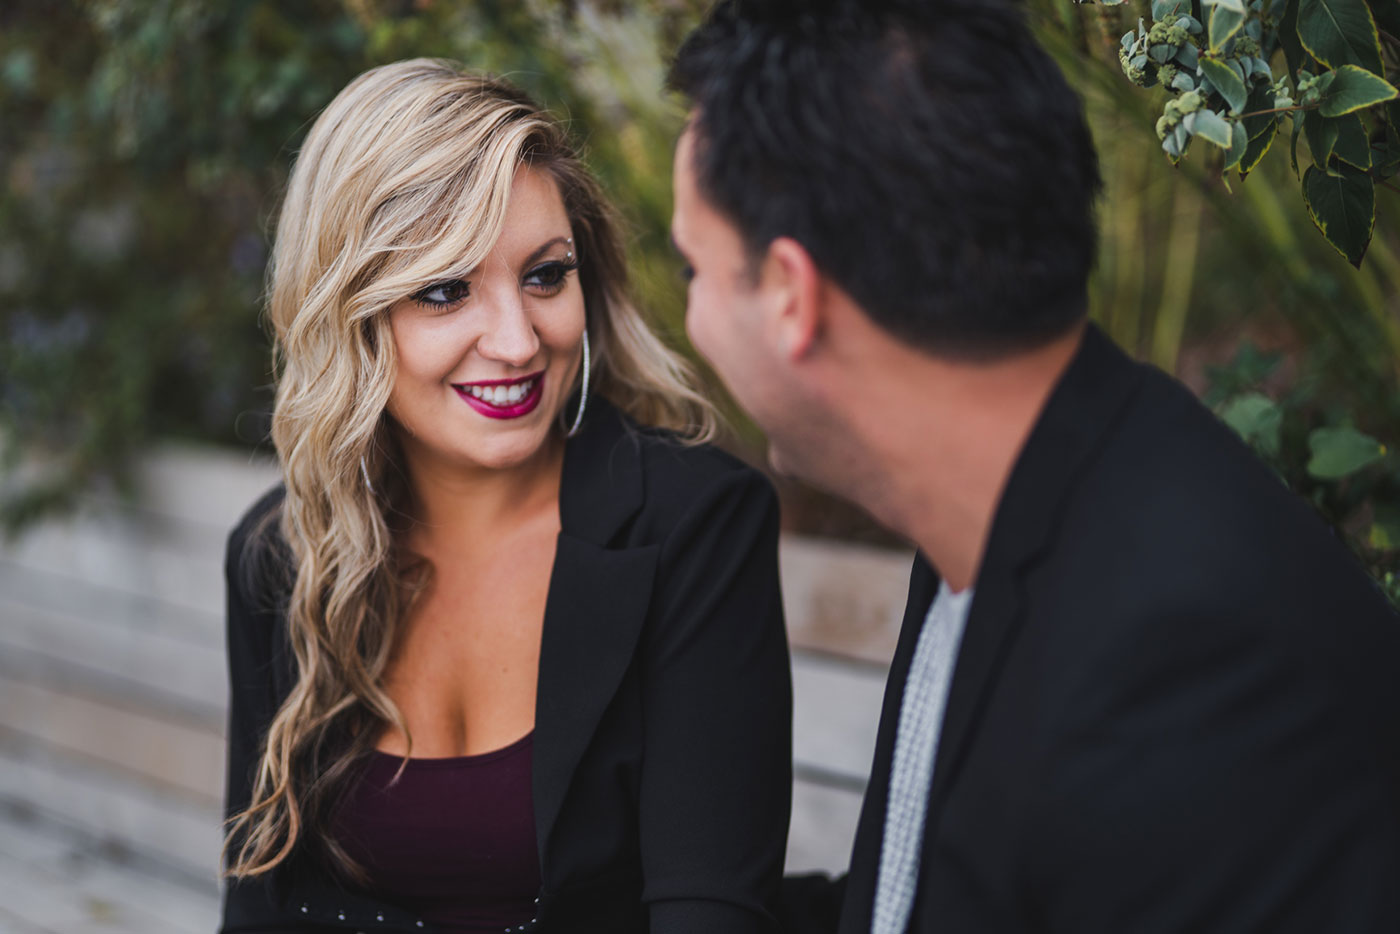 Kristina and Steven's engagement session at the Brooklyn Bridge Park by Weddings by Hanel